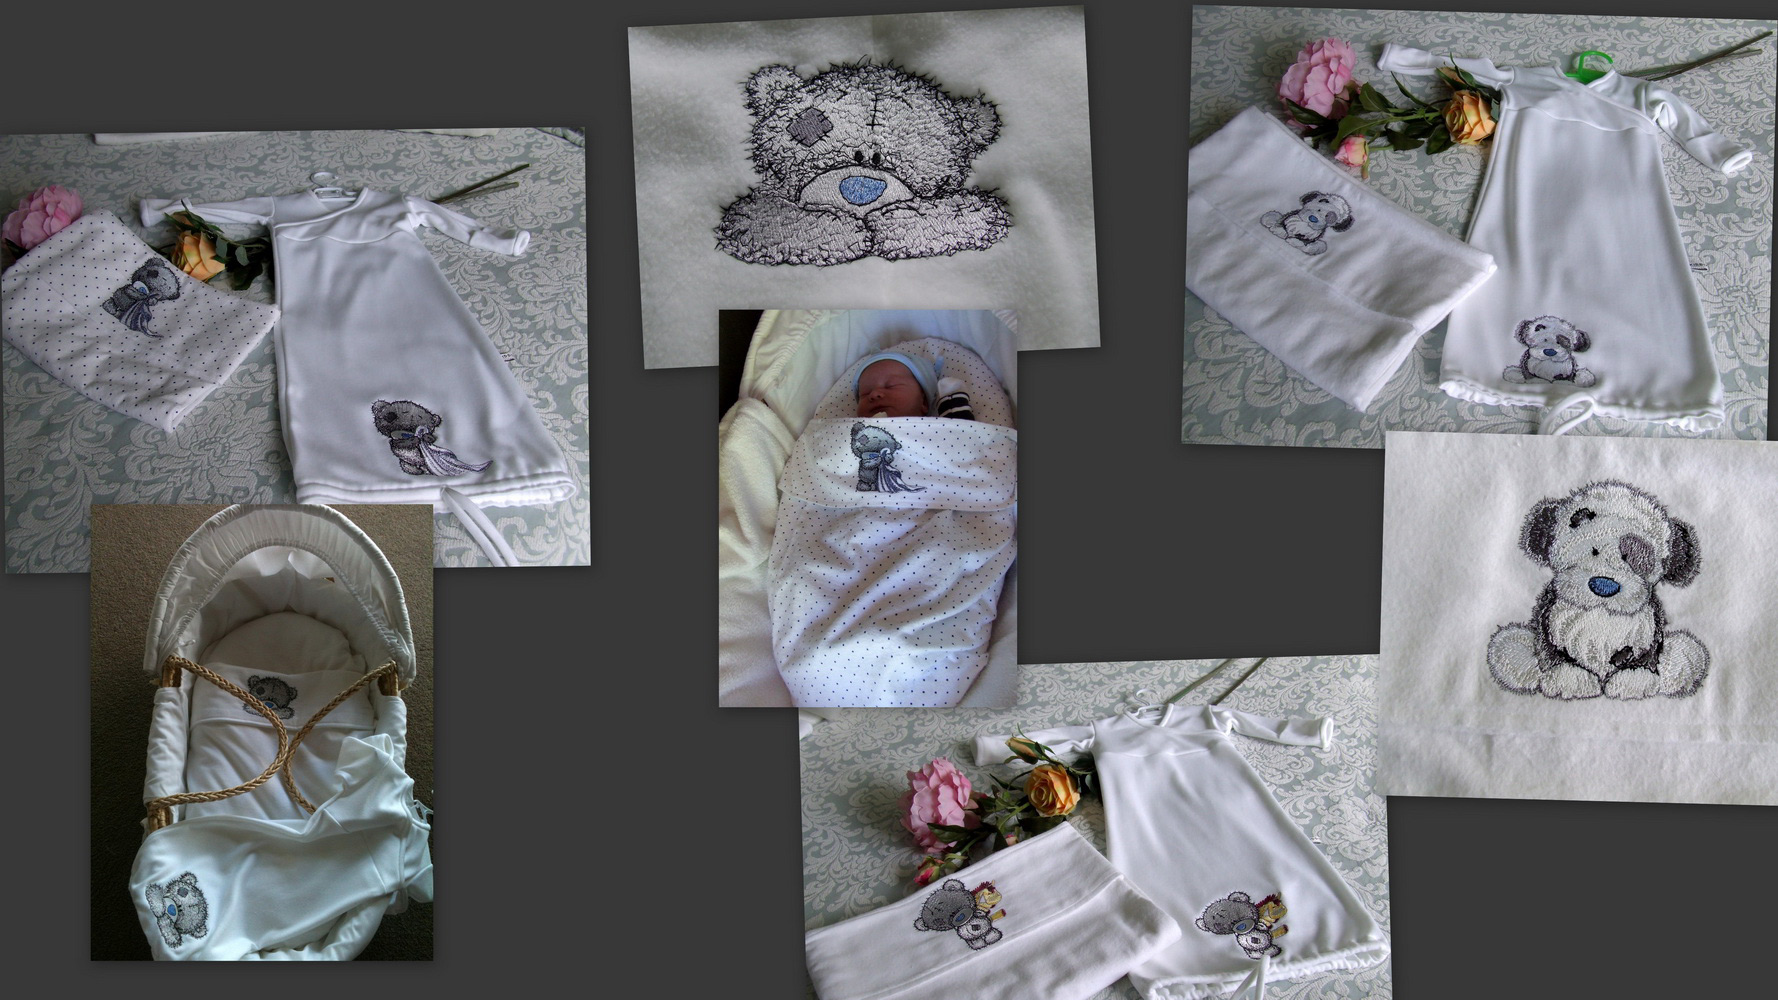 Teddy bear designs embroidered